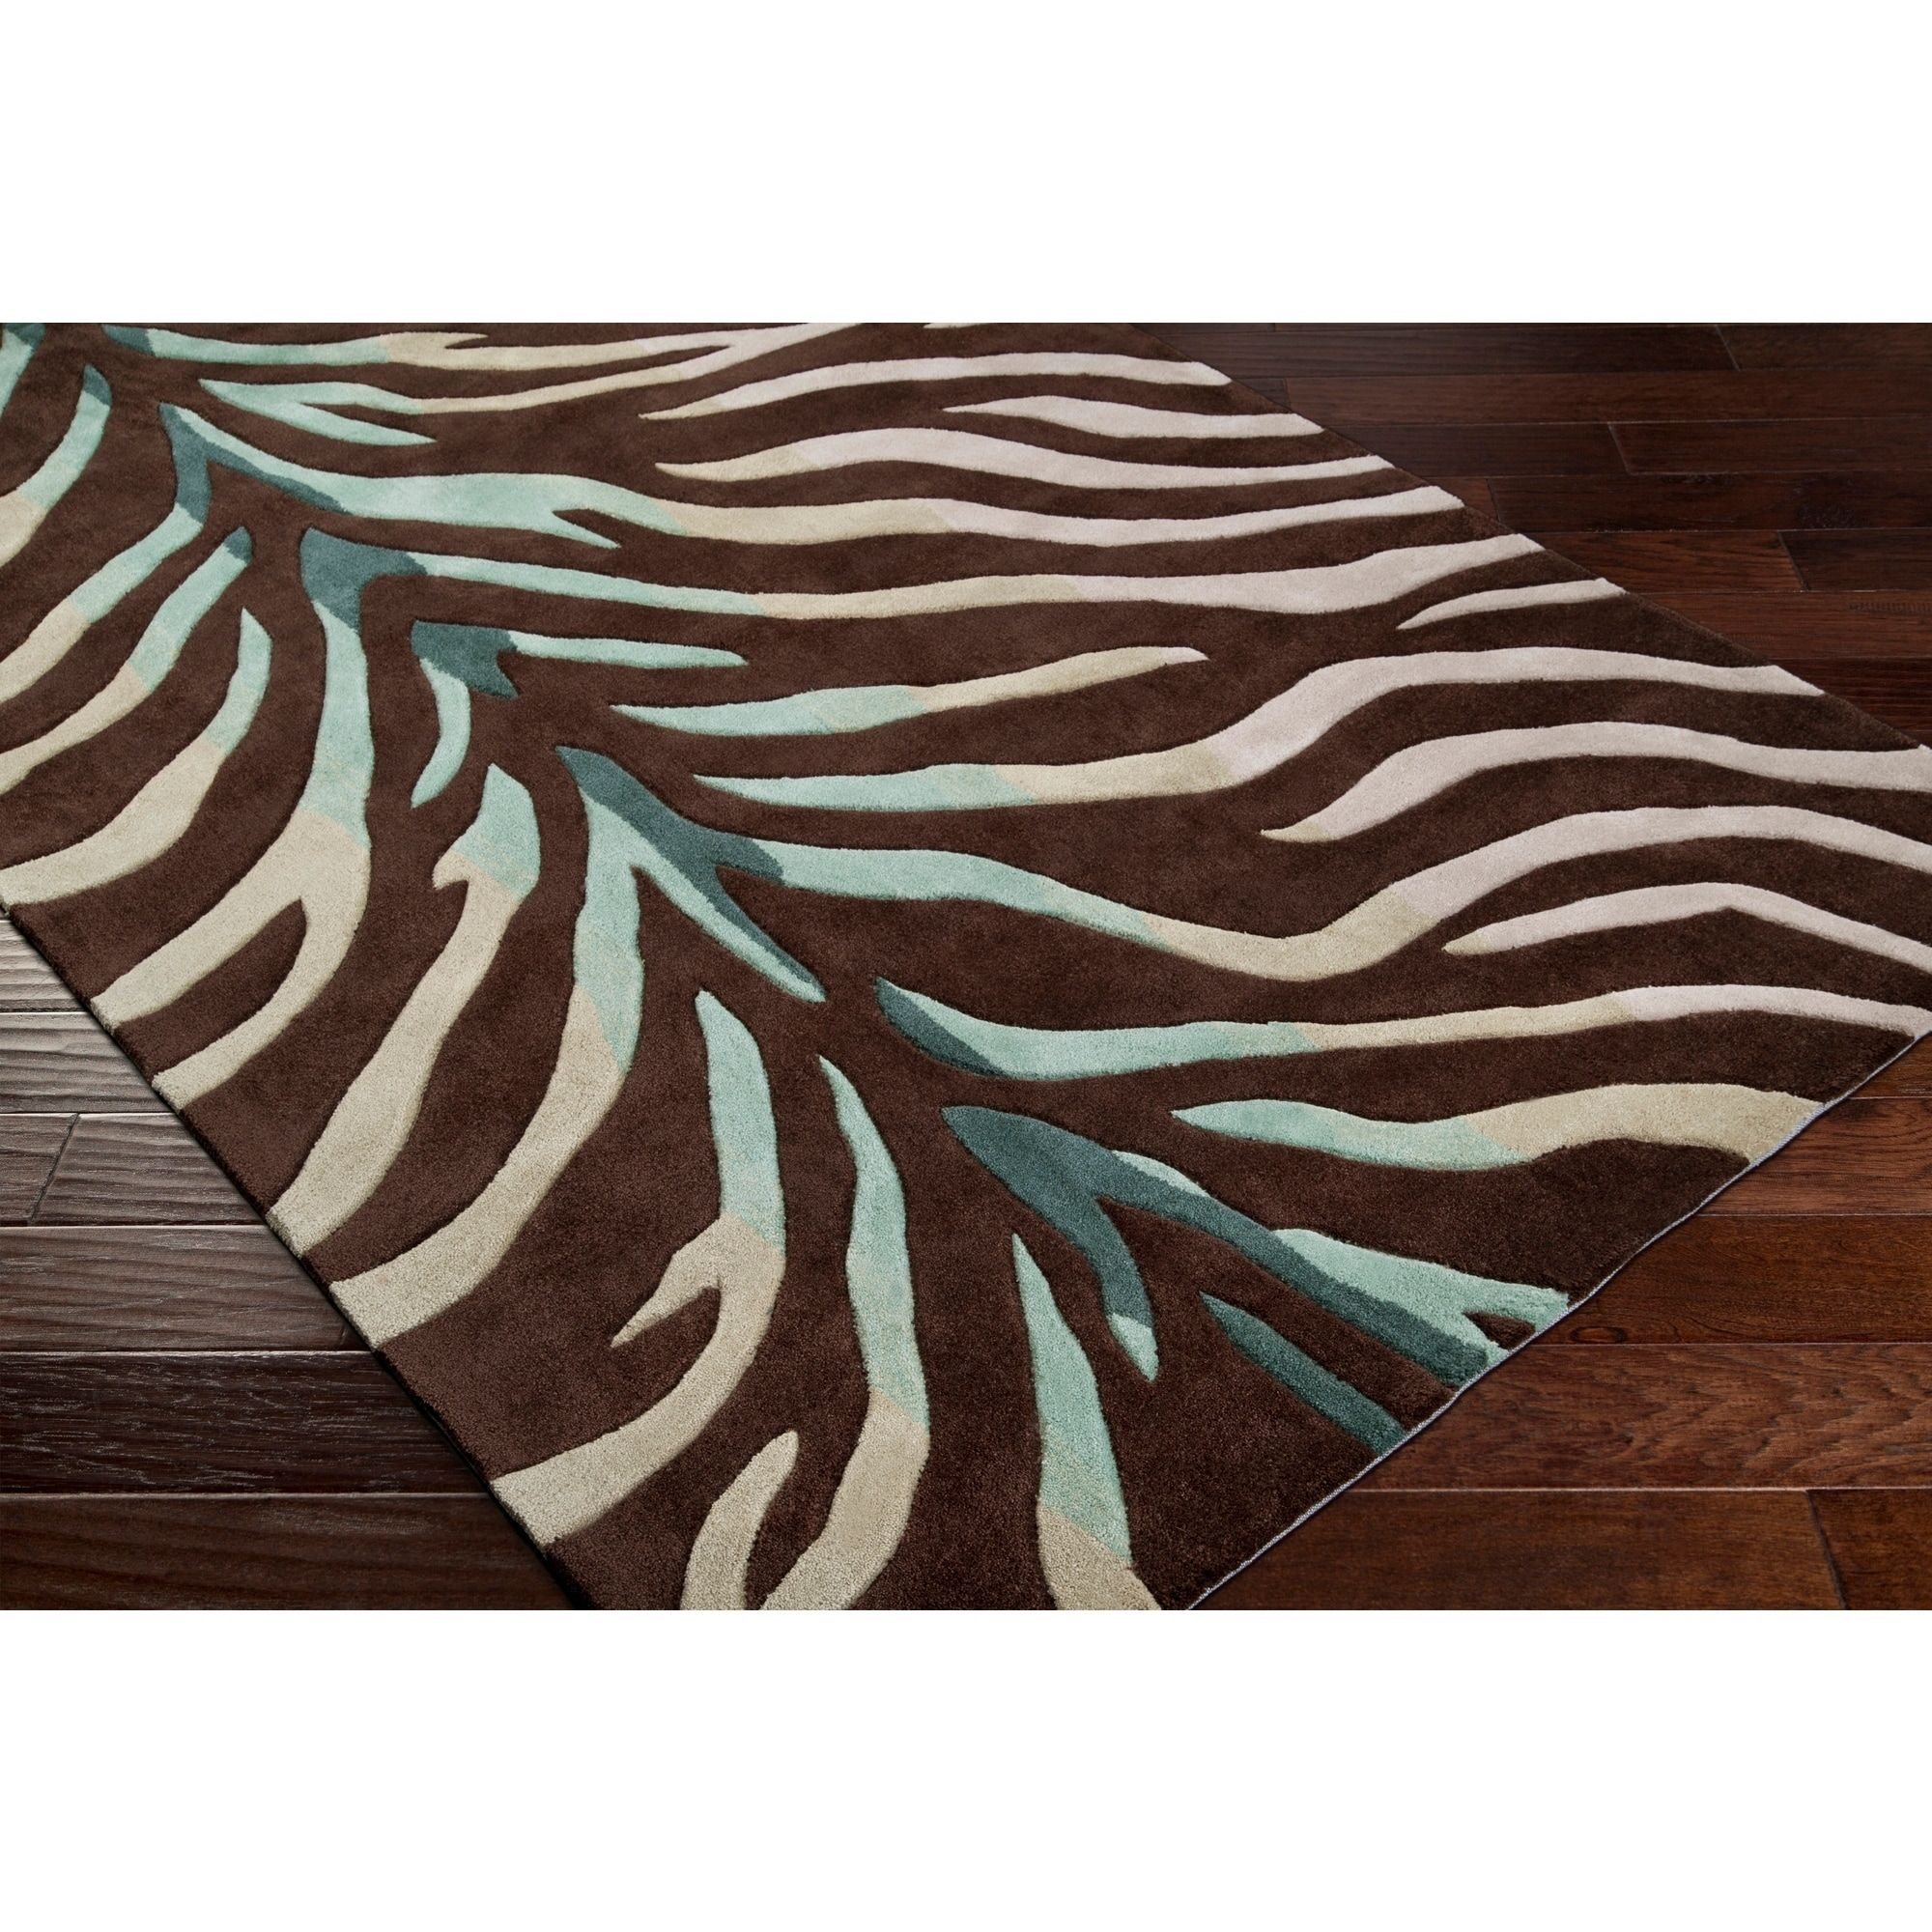 Online Shopping Bedding Furniture Electronics Jewelry Clothing More Animal Rug Area Rugs Animal Print Rug